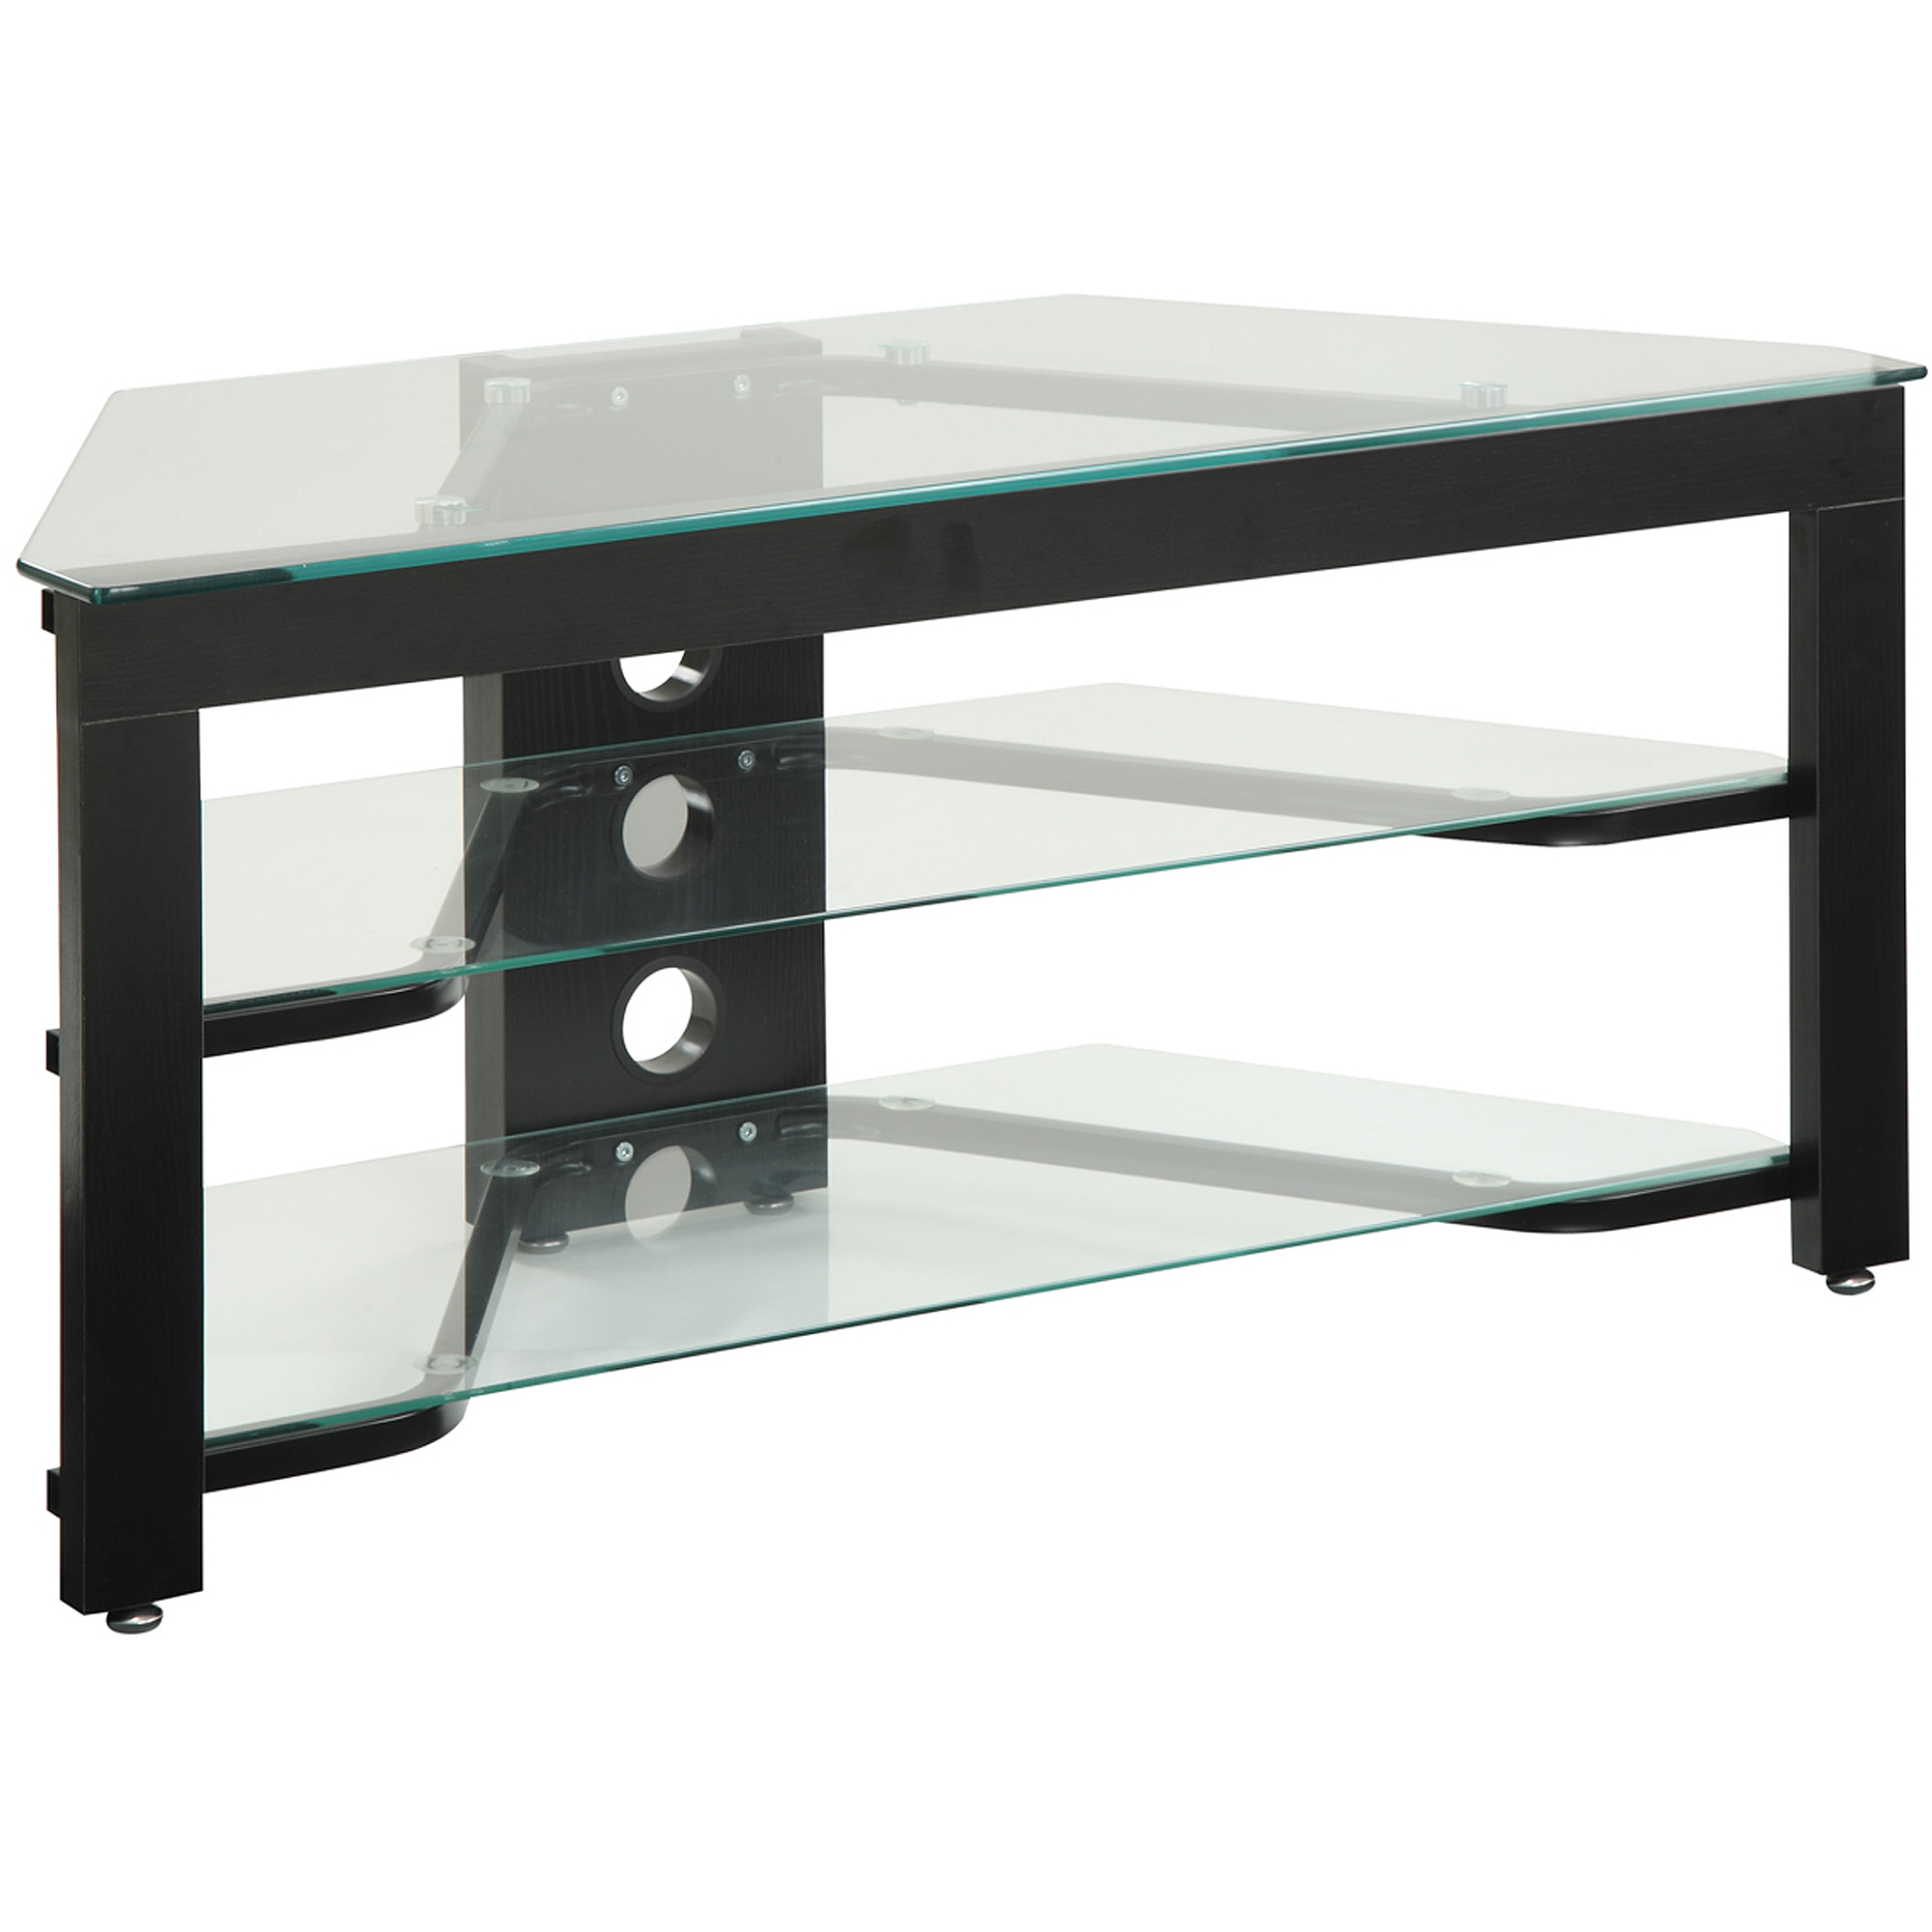 Most Current Silver Tv Stand K&b Chrome Modern Gold And Glass Corner With Media Intended For Modern Glass Tv Stands (View 13 of 20)